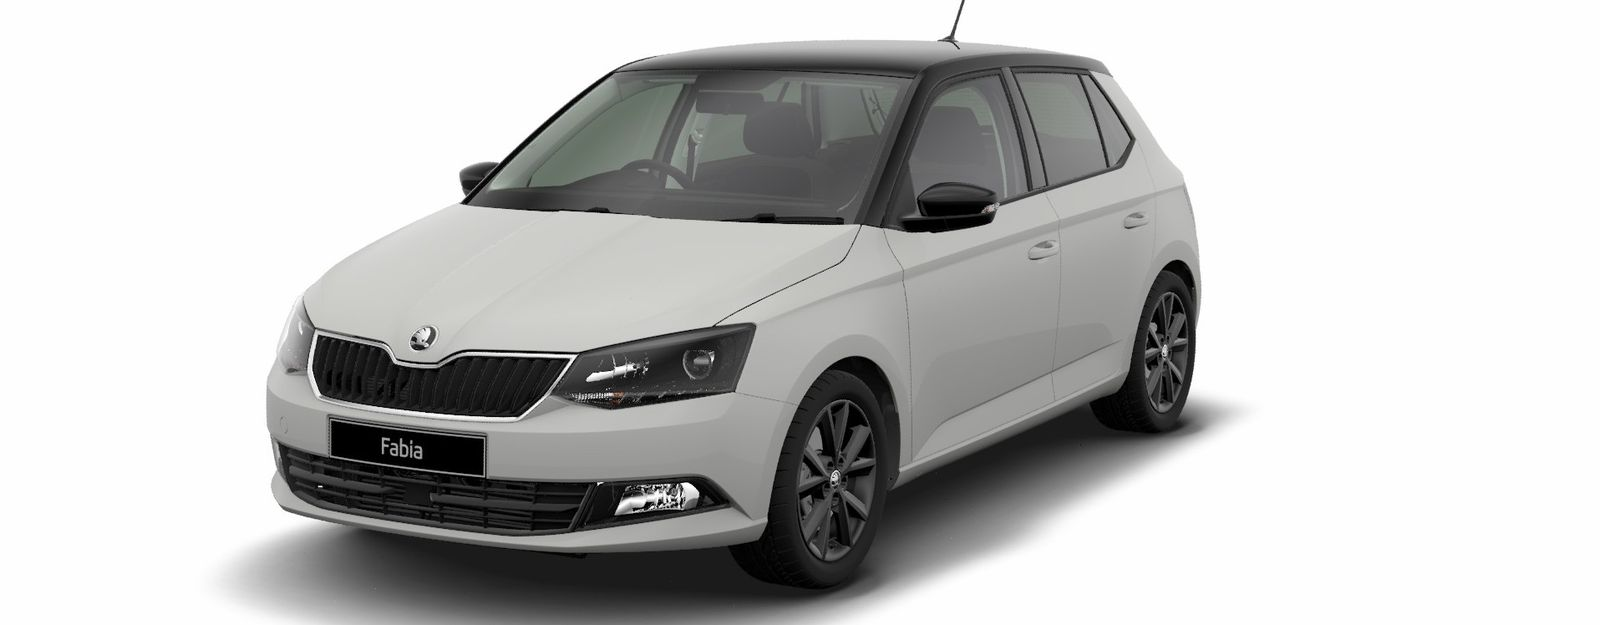 2015 skoda fabia uk colour guide and prices carwow. Black Bedroom Furniture Sets. Home Design Ideas